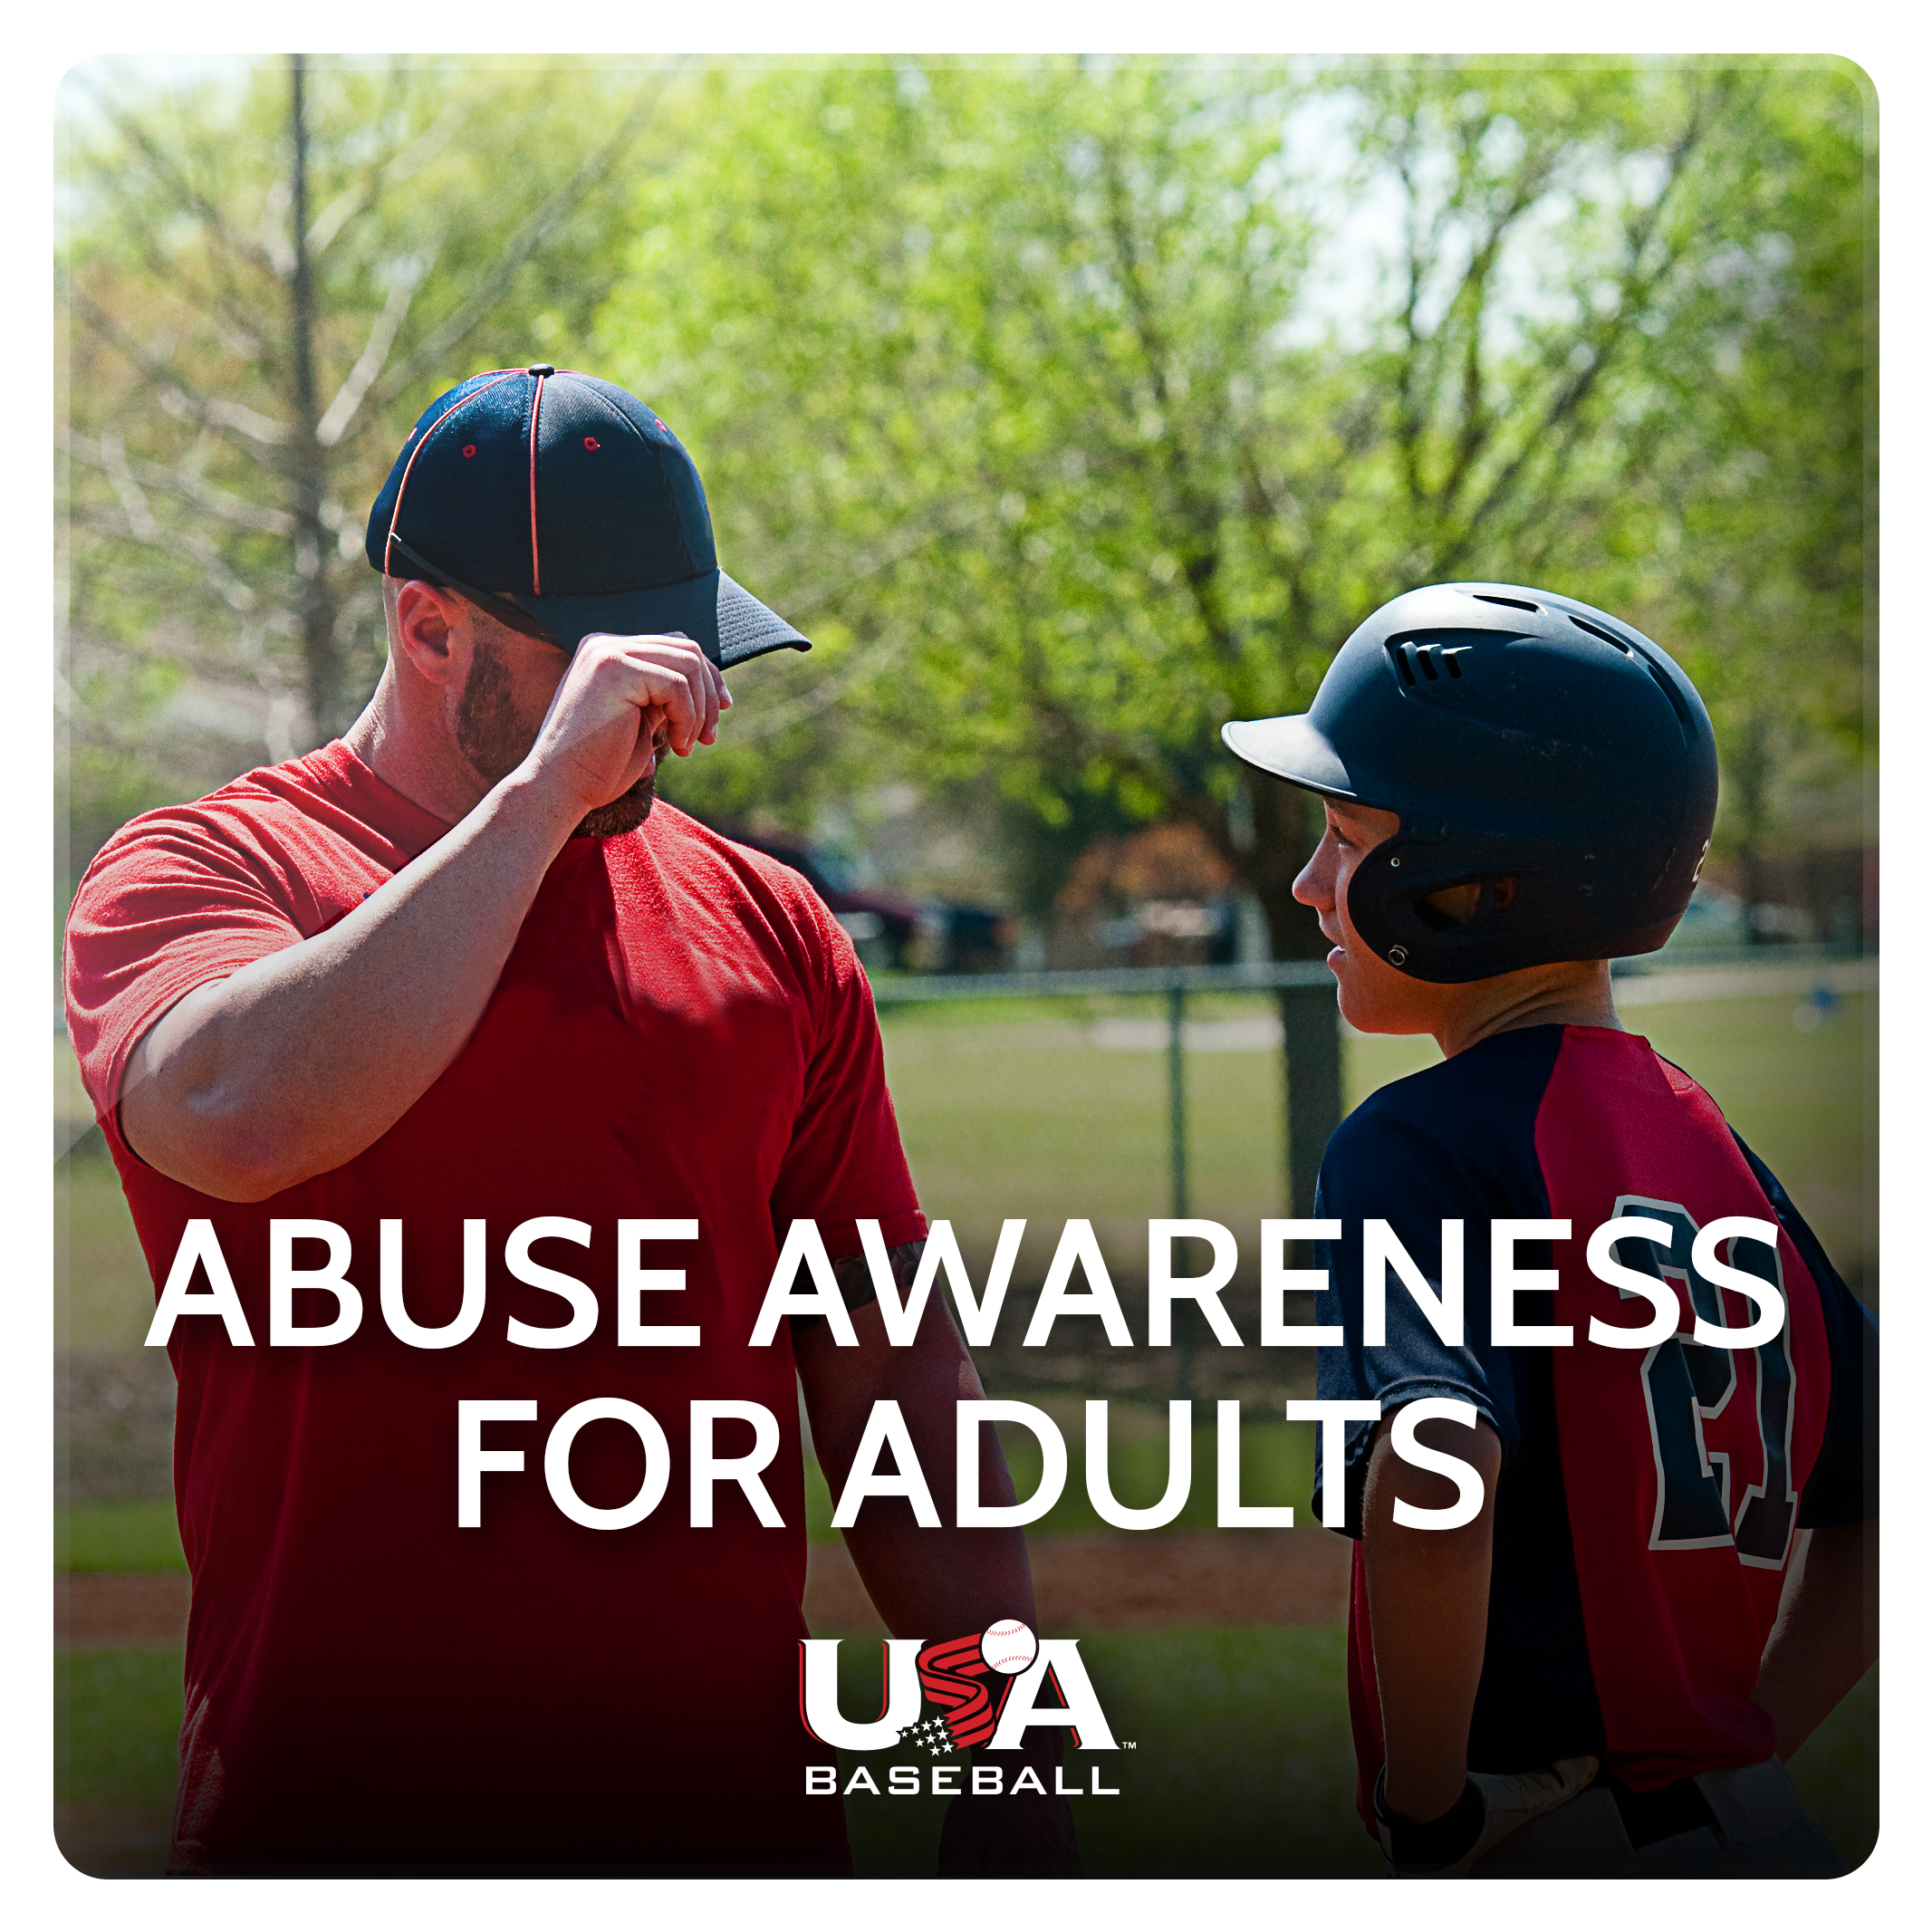 Abuse Awareness for Adults